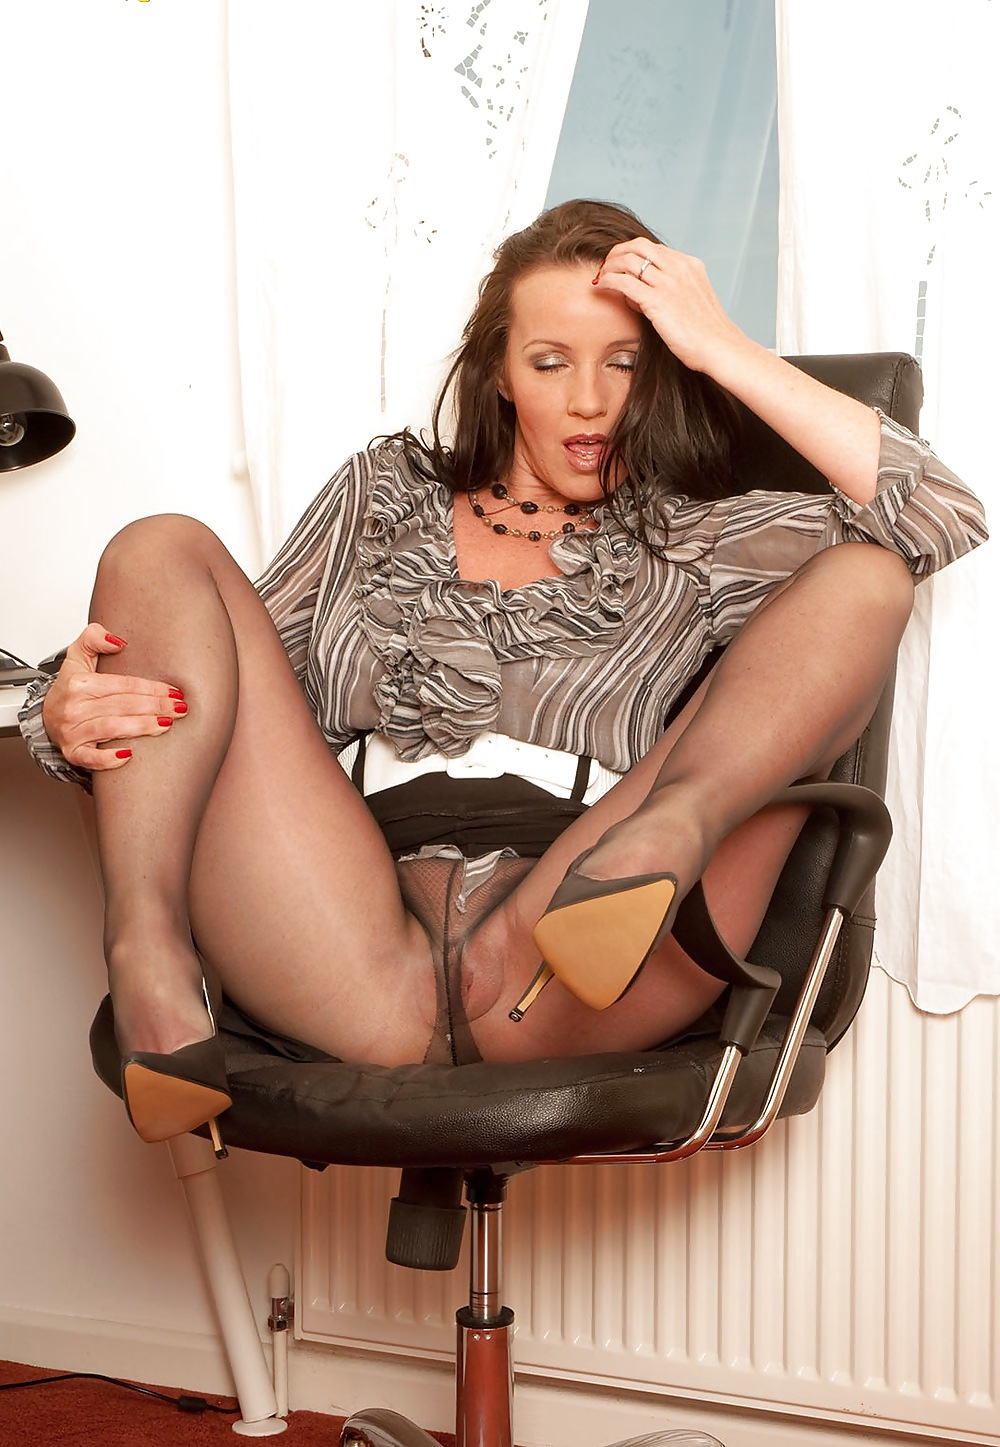 Petite Babe Chloe Toy Strips And Wanks Her Tidy Fluffy Blonde Pussy In Vintage Beige Nylons And Stiletto Pumps